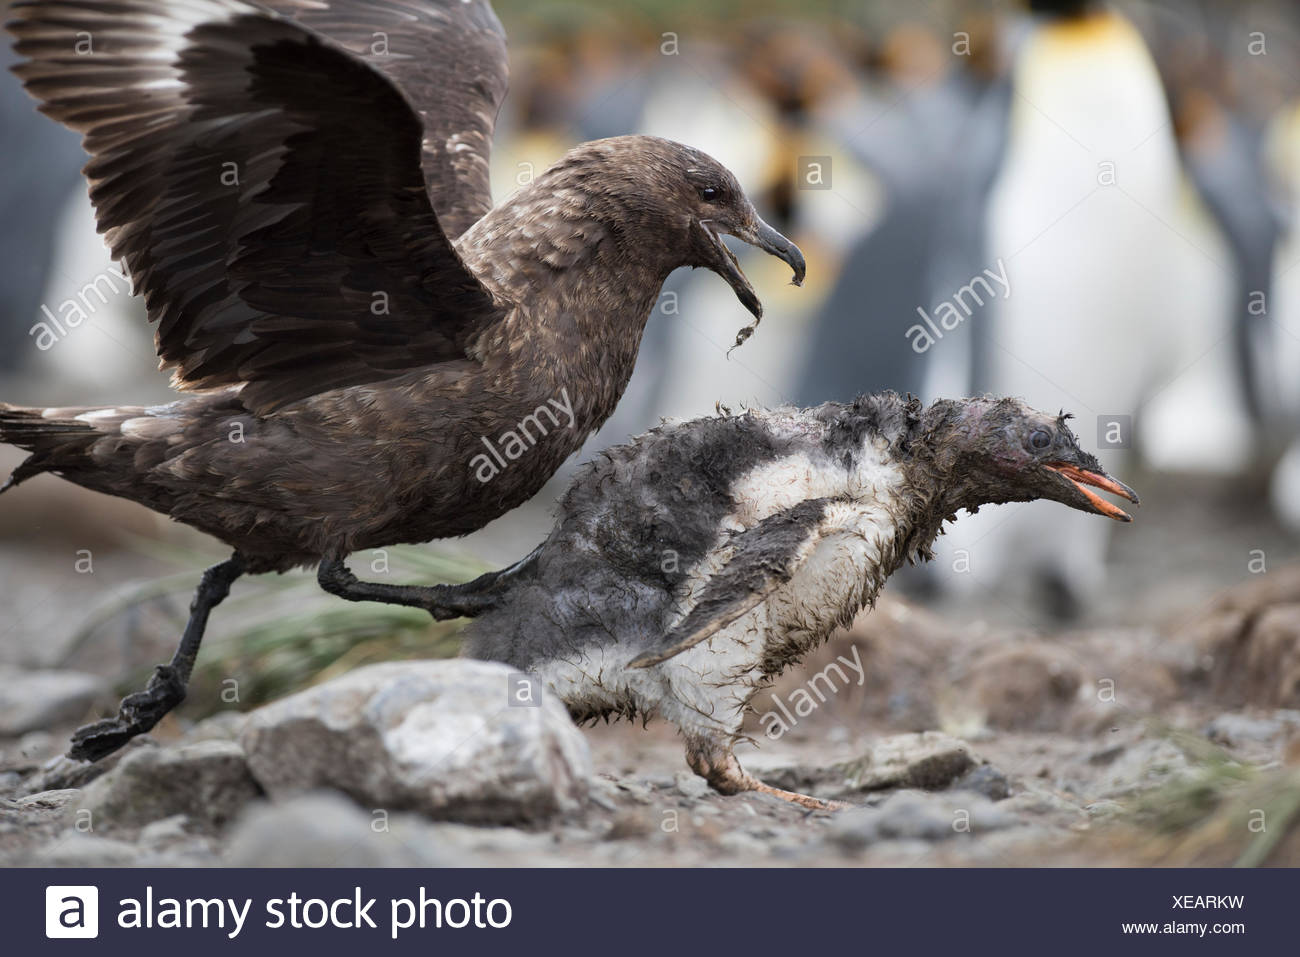 Brown Skua Stercorarius antarcticus attacking a Gentoo Penguin Pygoscelis papua chick that has wandered into a King Penguin colo - Stock Image